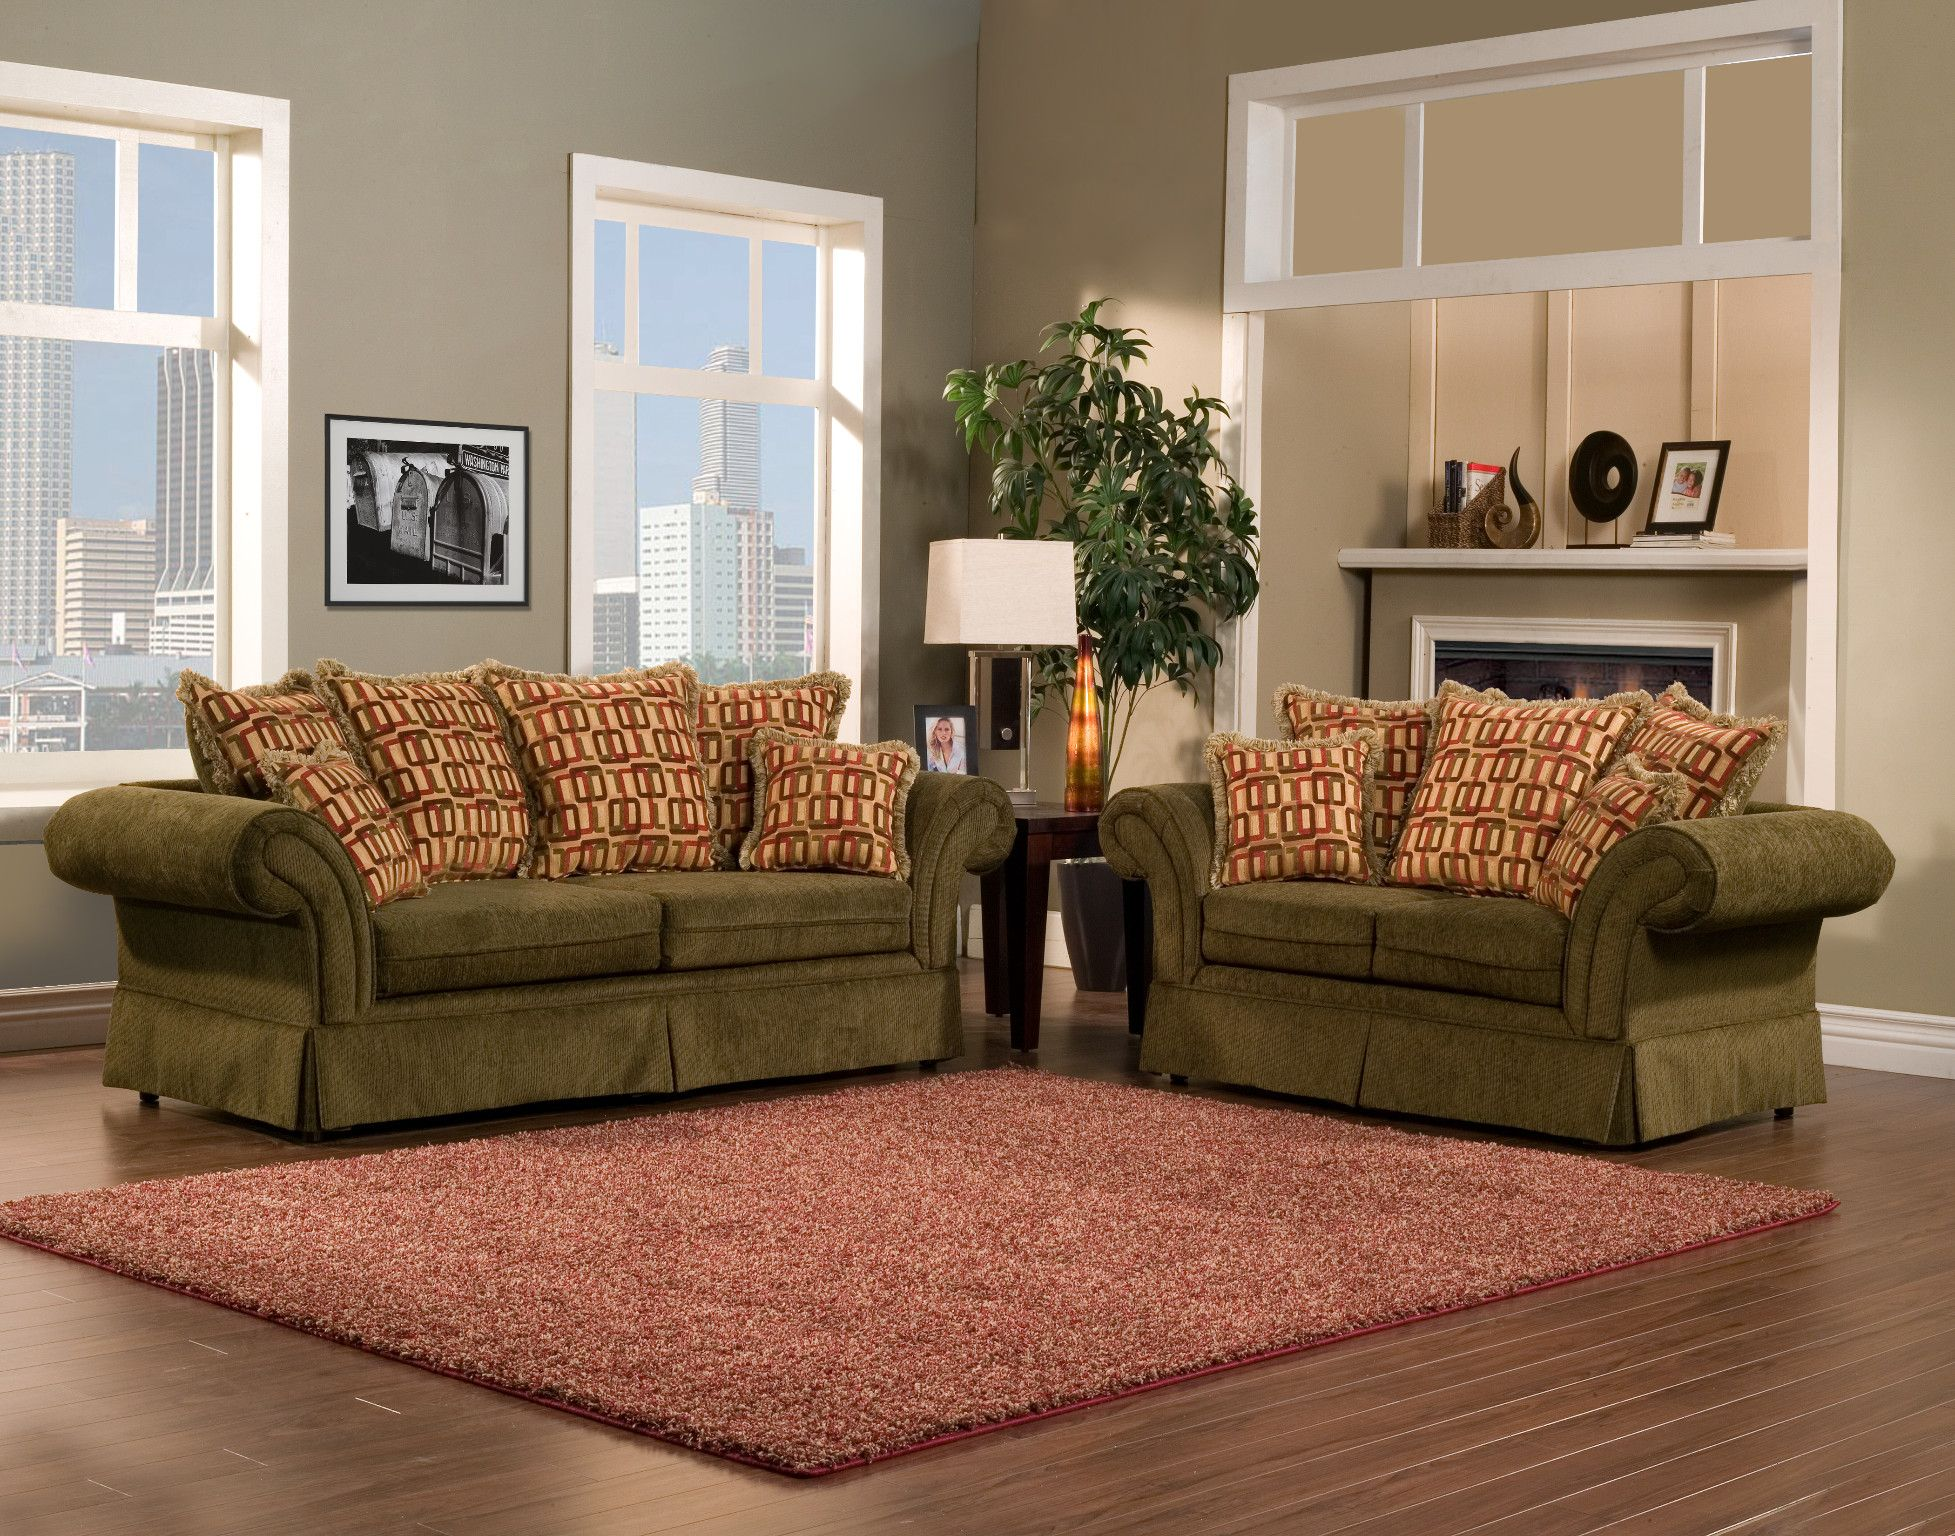 Living Room Ideas Olive Green pleasureable olive green fabric traditional sofa with red cushions